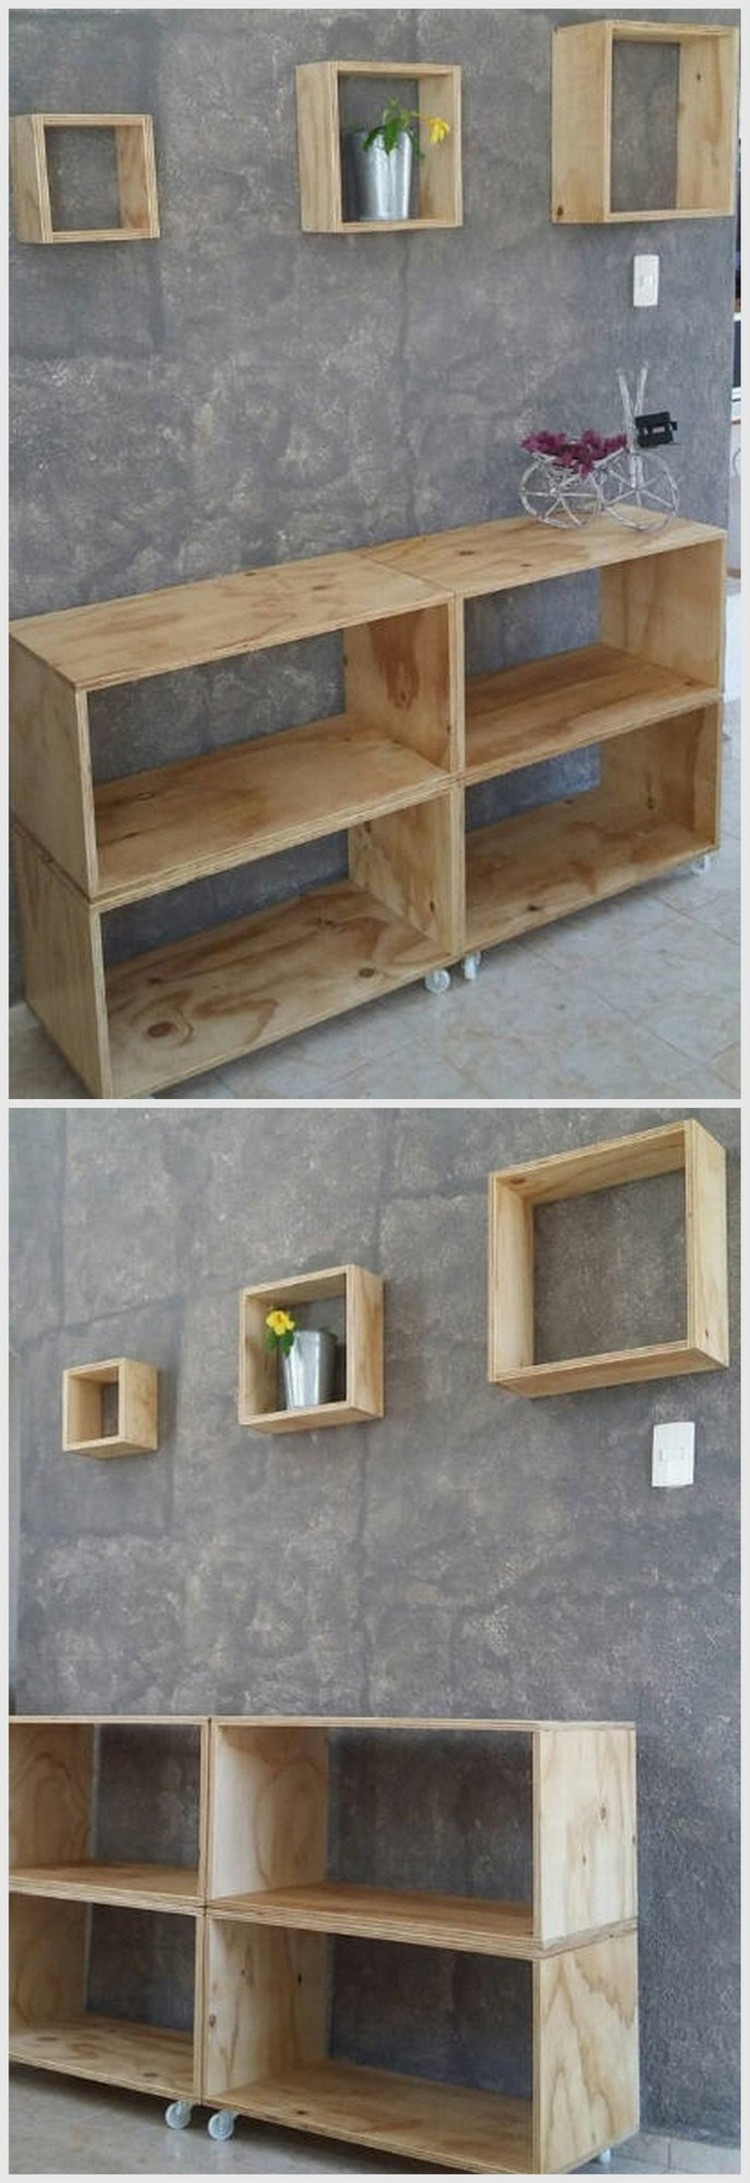 Recycling ideas with old shipping pallets pallet wood Pallet ideas